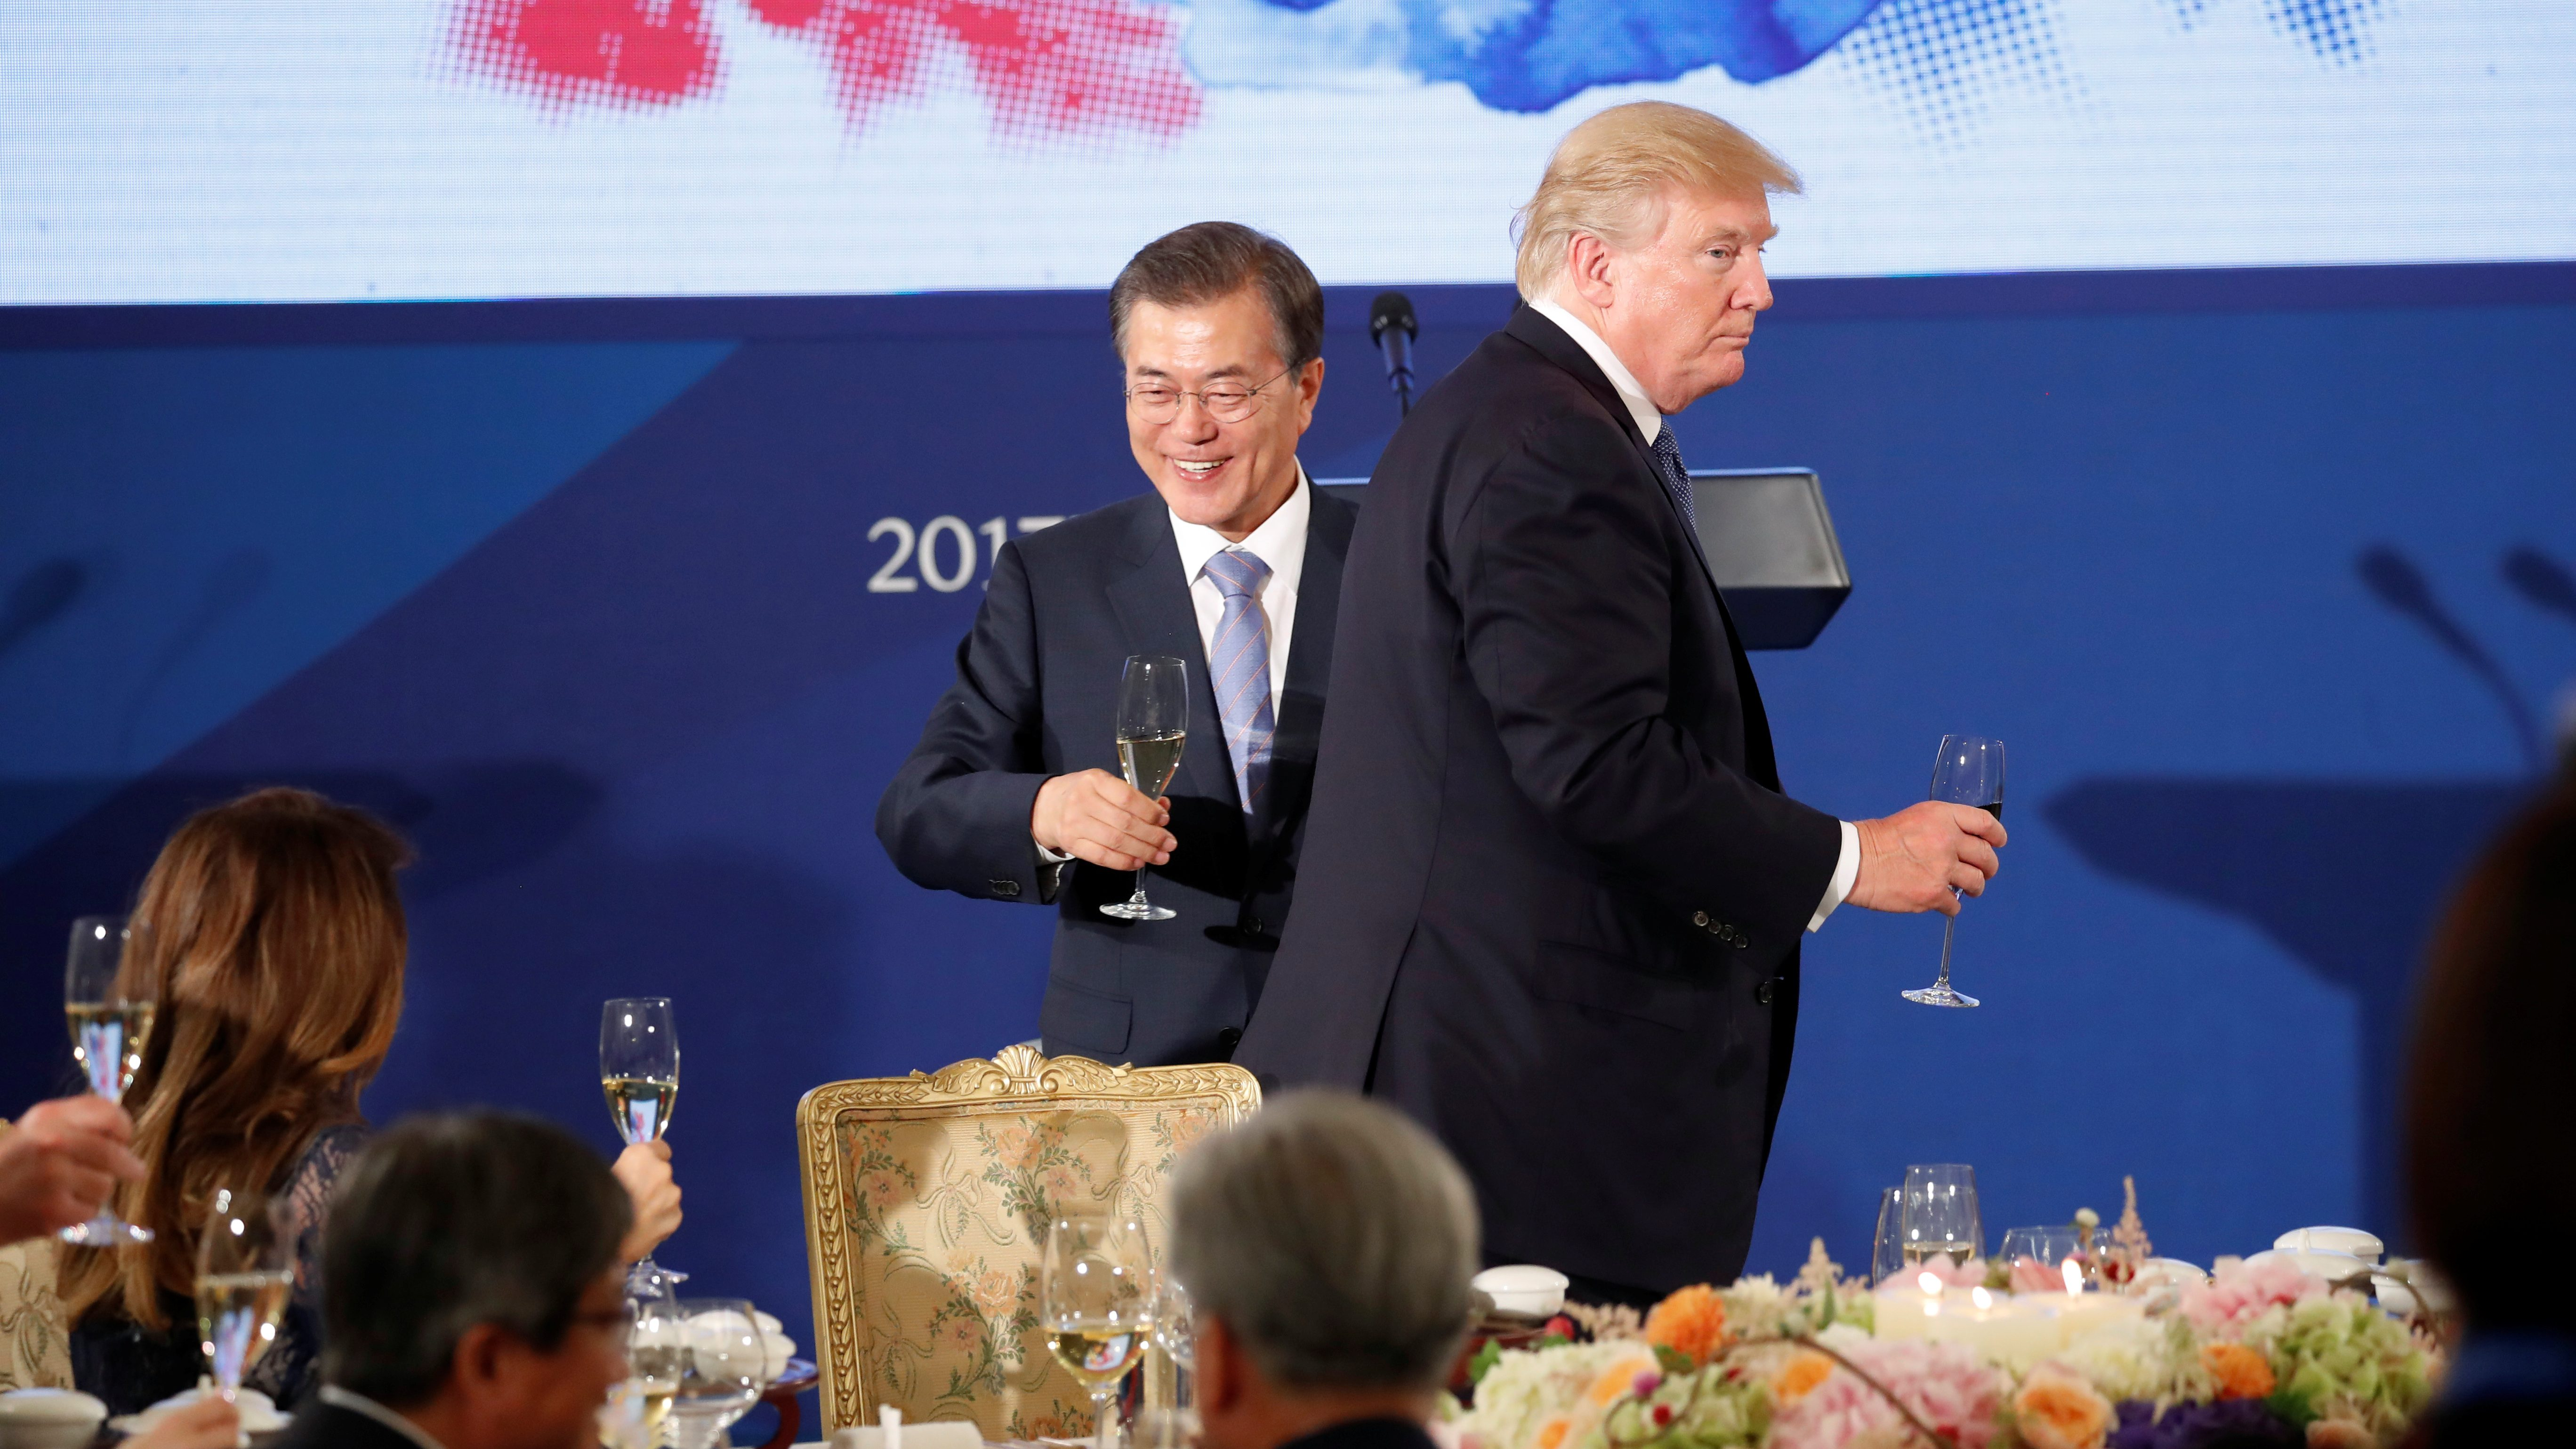 U.S. President Donald Trump attends a state dinner hosted by South Korea's President Moon Jae-in in his honor at the Blue House in Seoul, South Korea November 7, 2017.